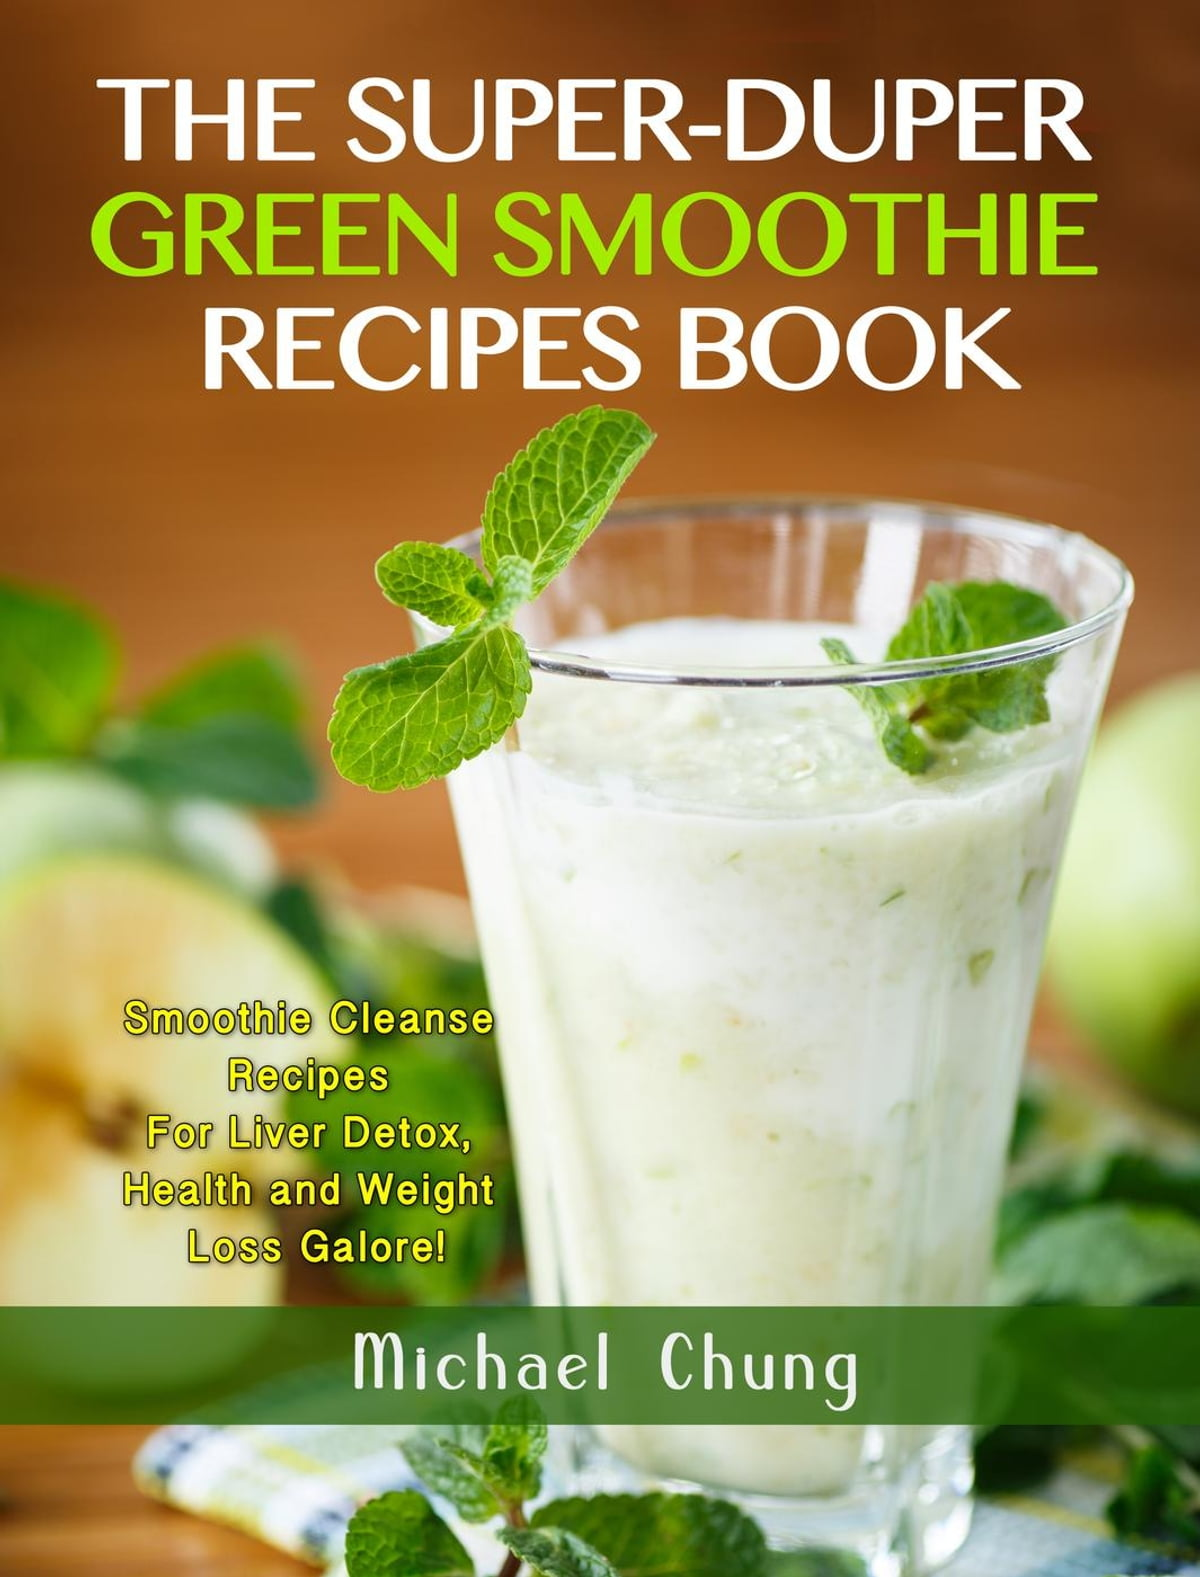 The Super Duper Green Smoothie Recipe Book Smoothie Cleanse Recipes For Liver Detox Health And Weight Loss Galore Ebook By Michael Chung 9781533710789 Rakuten Kobo United States